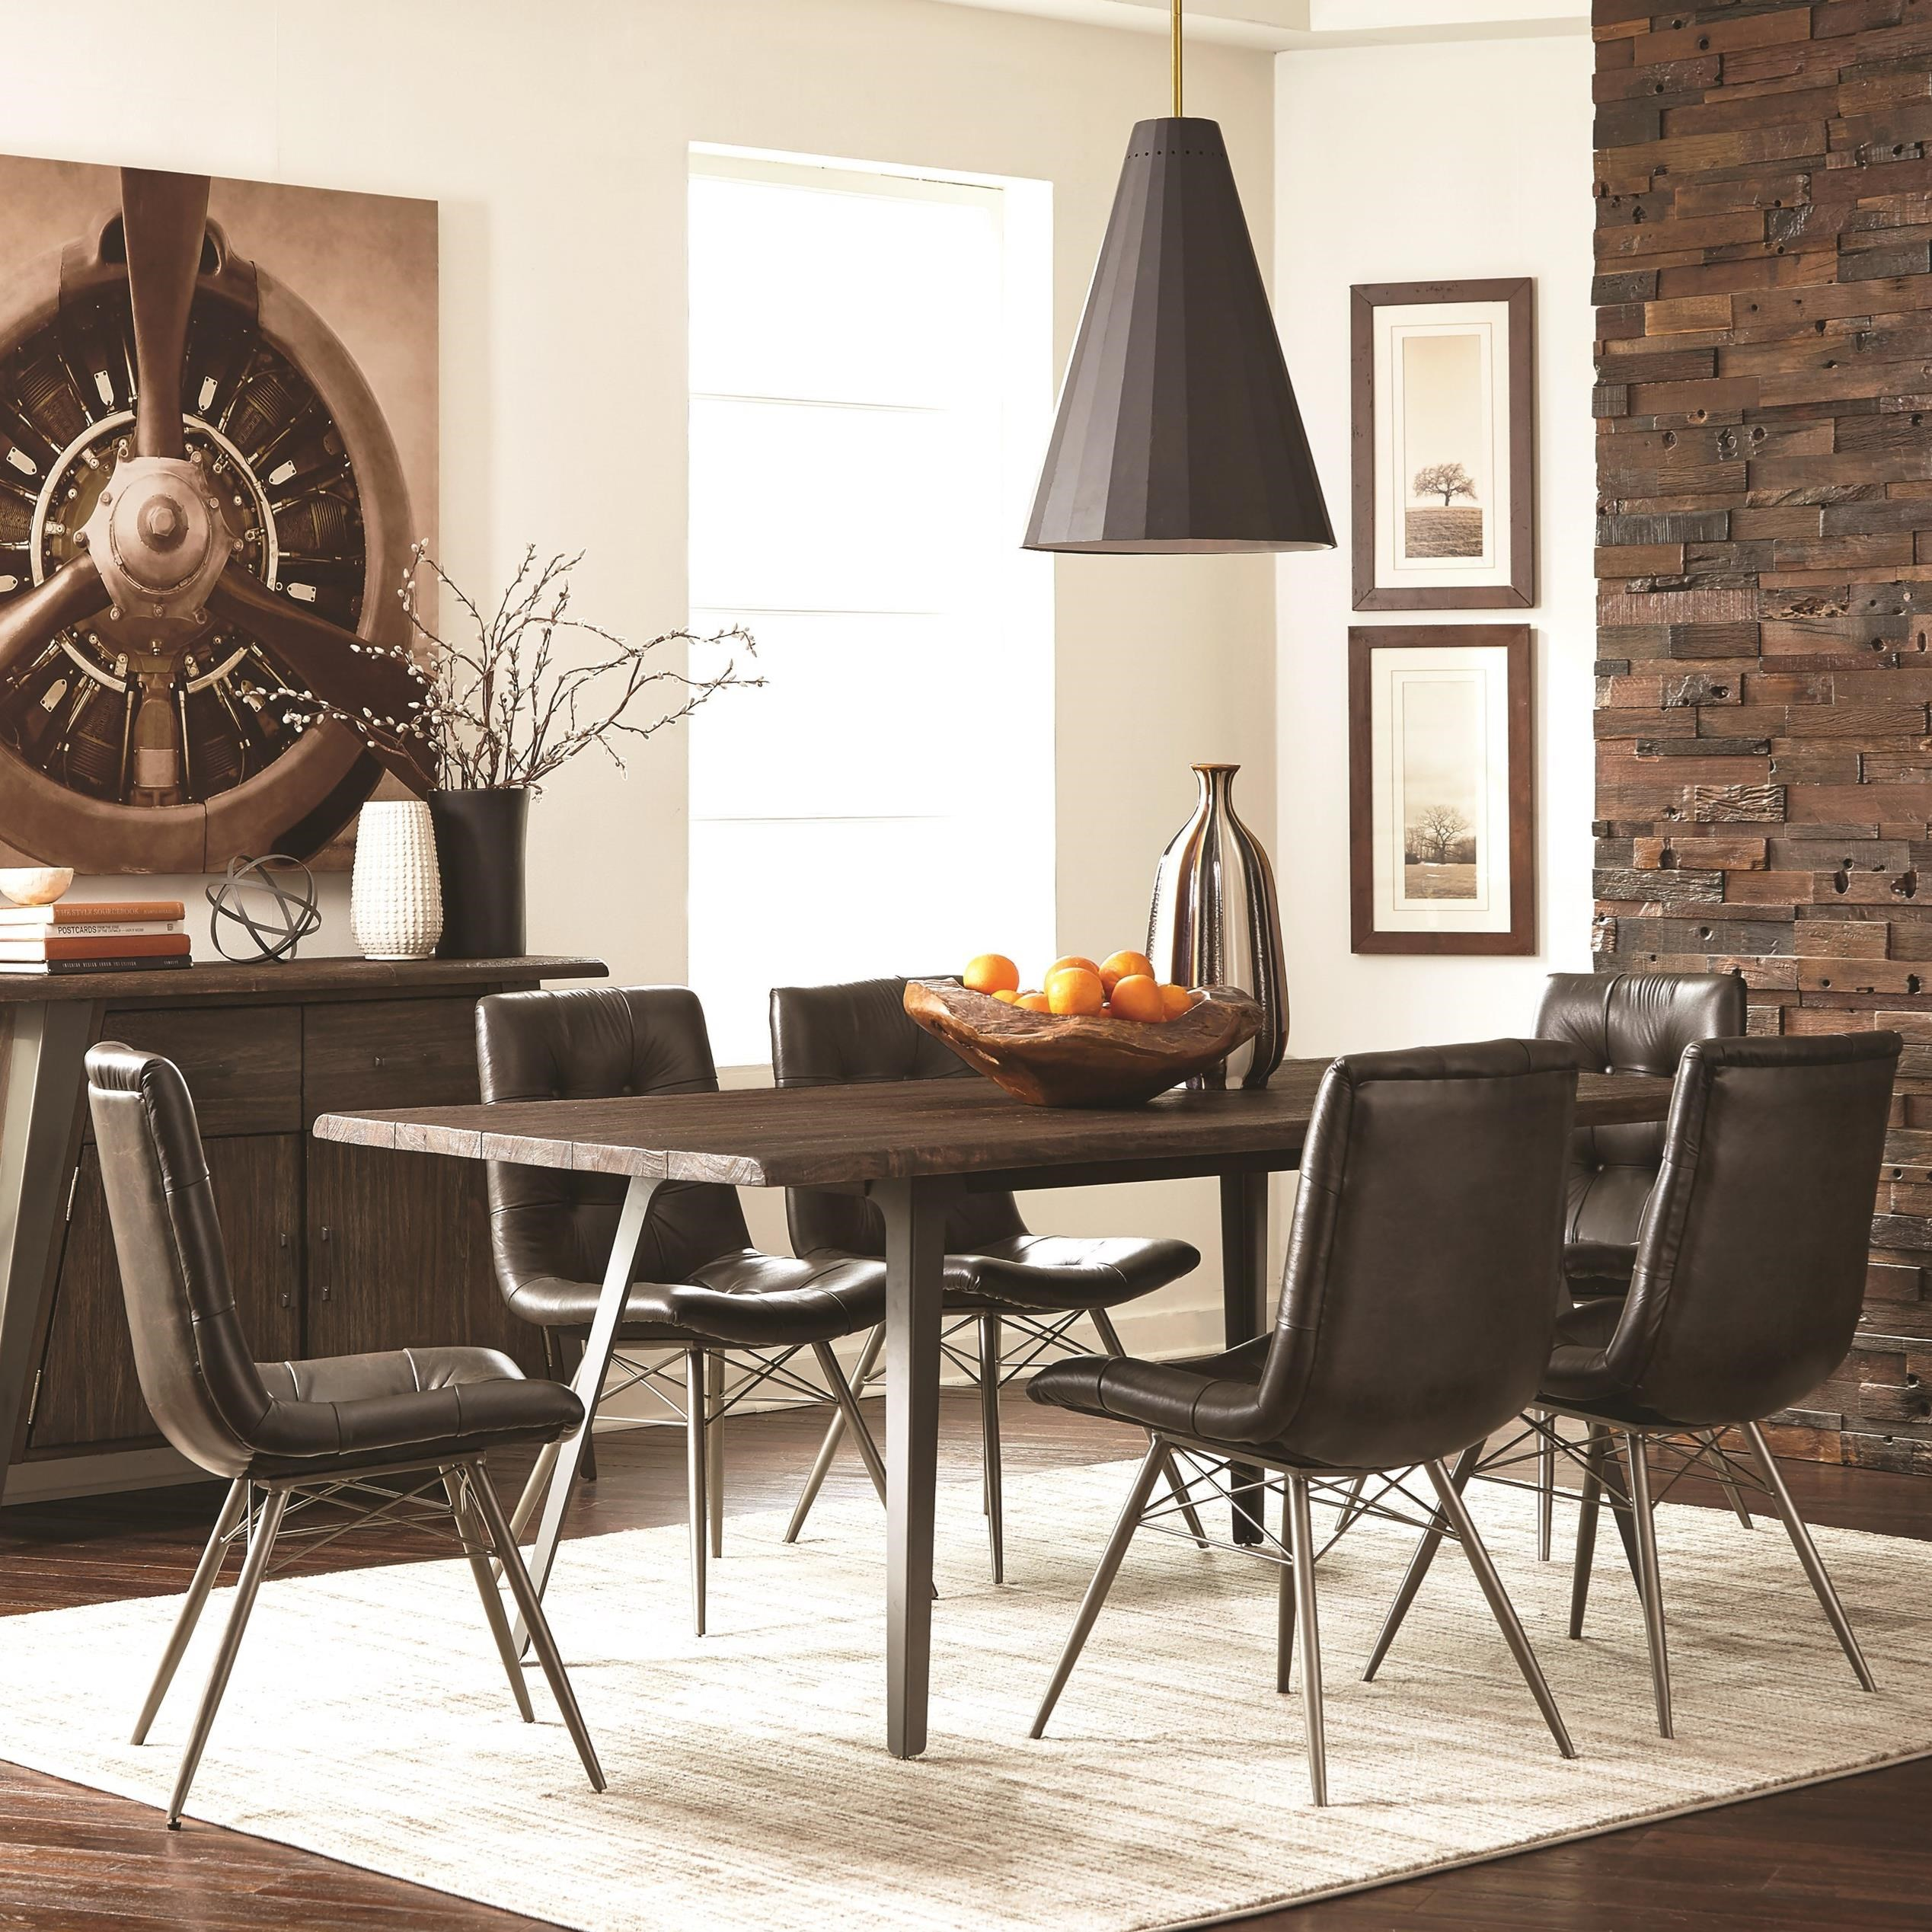 Dining Room Sets Dallas Tx: Coaster Fremont 7pc Rustic Brown Dining Table Set Dallas